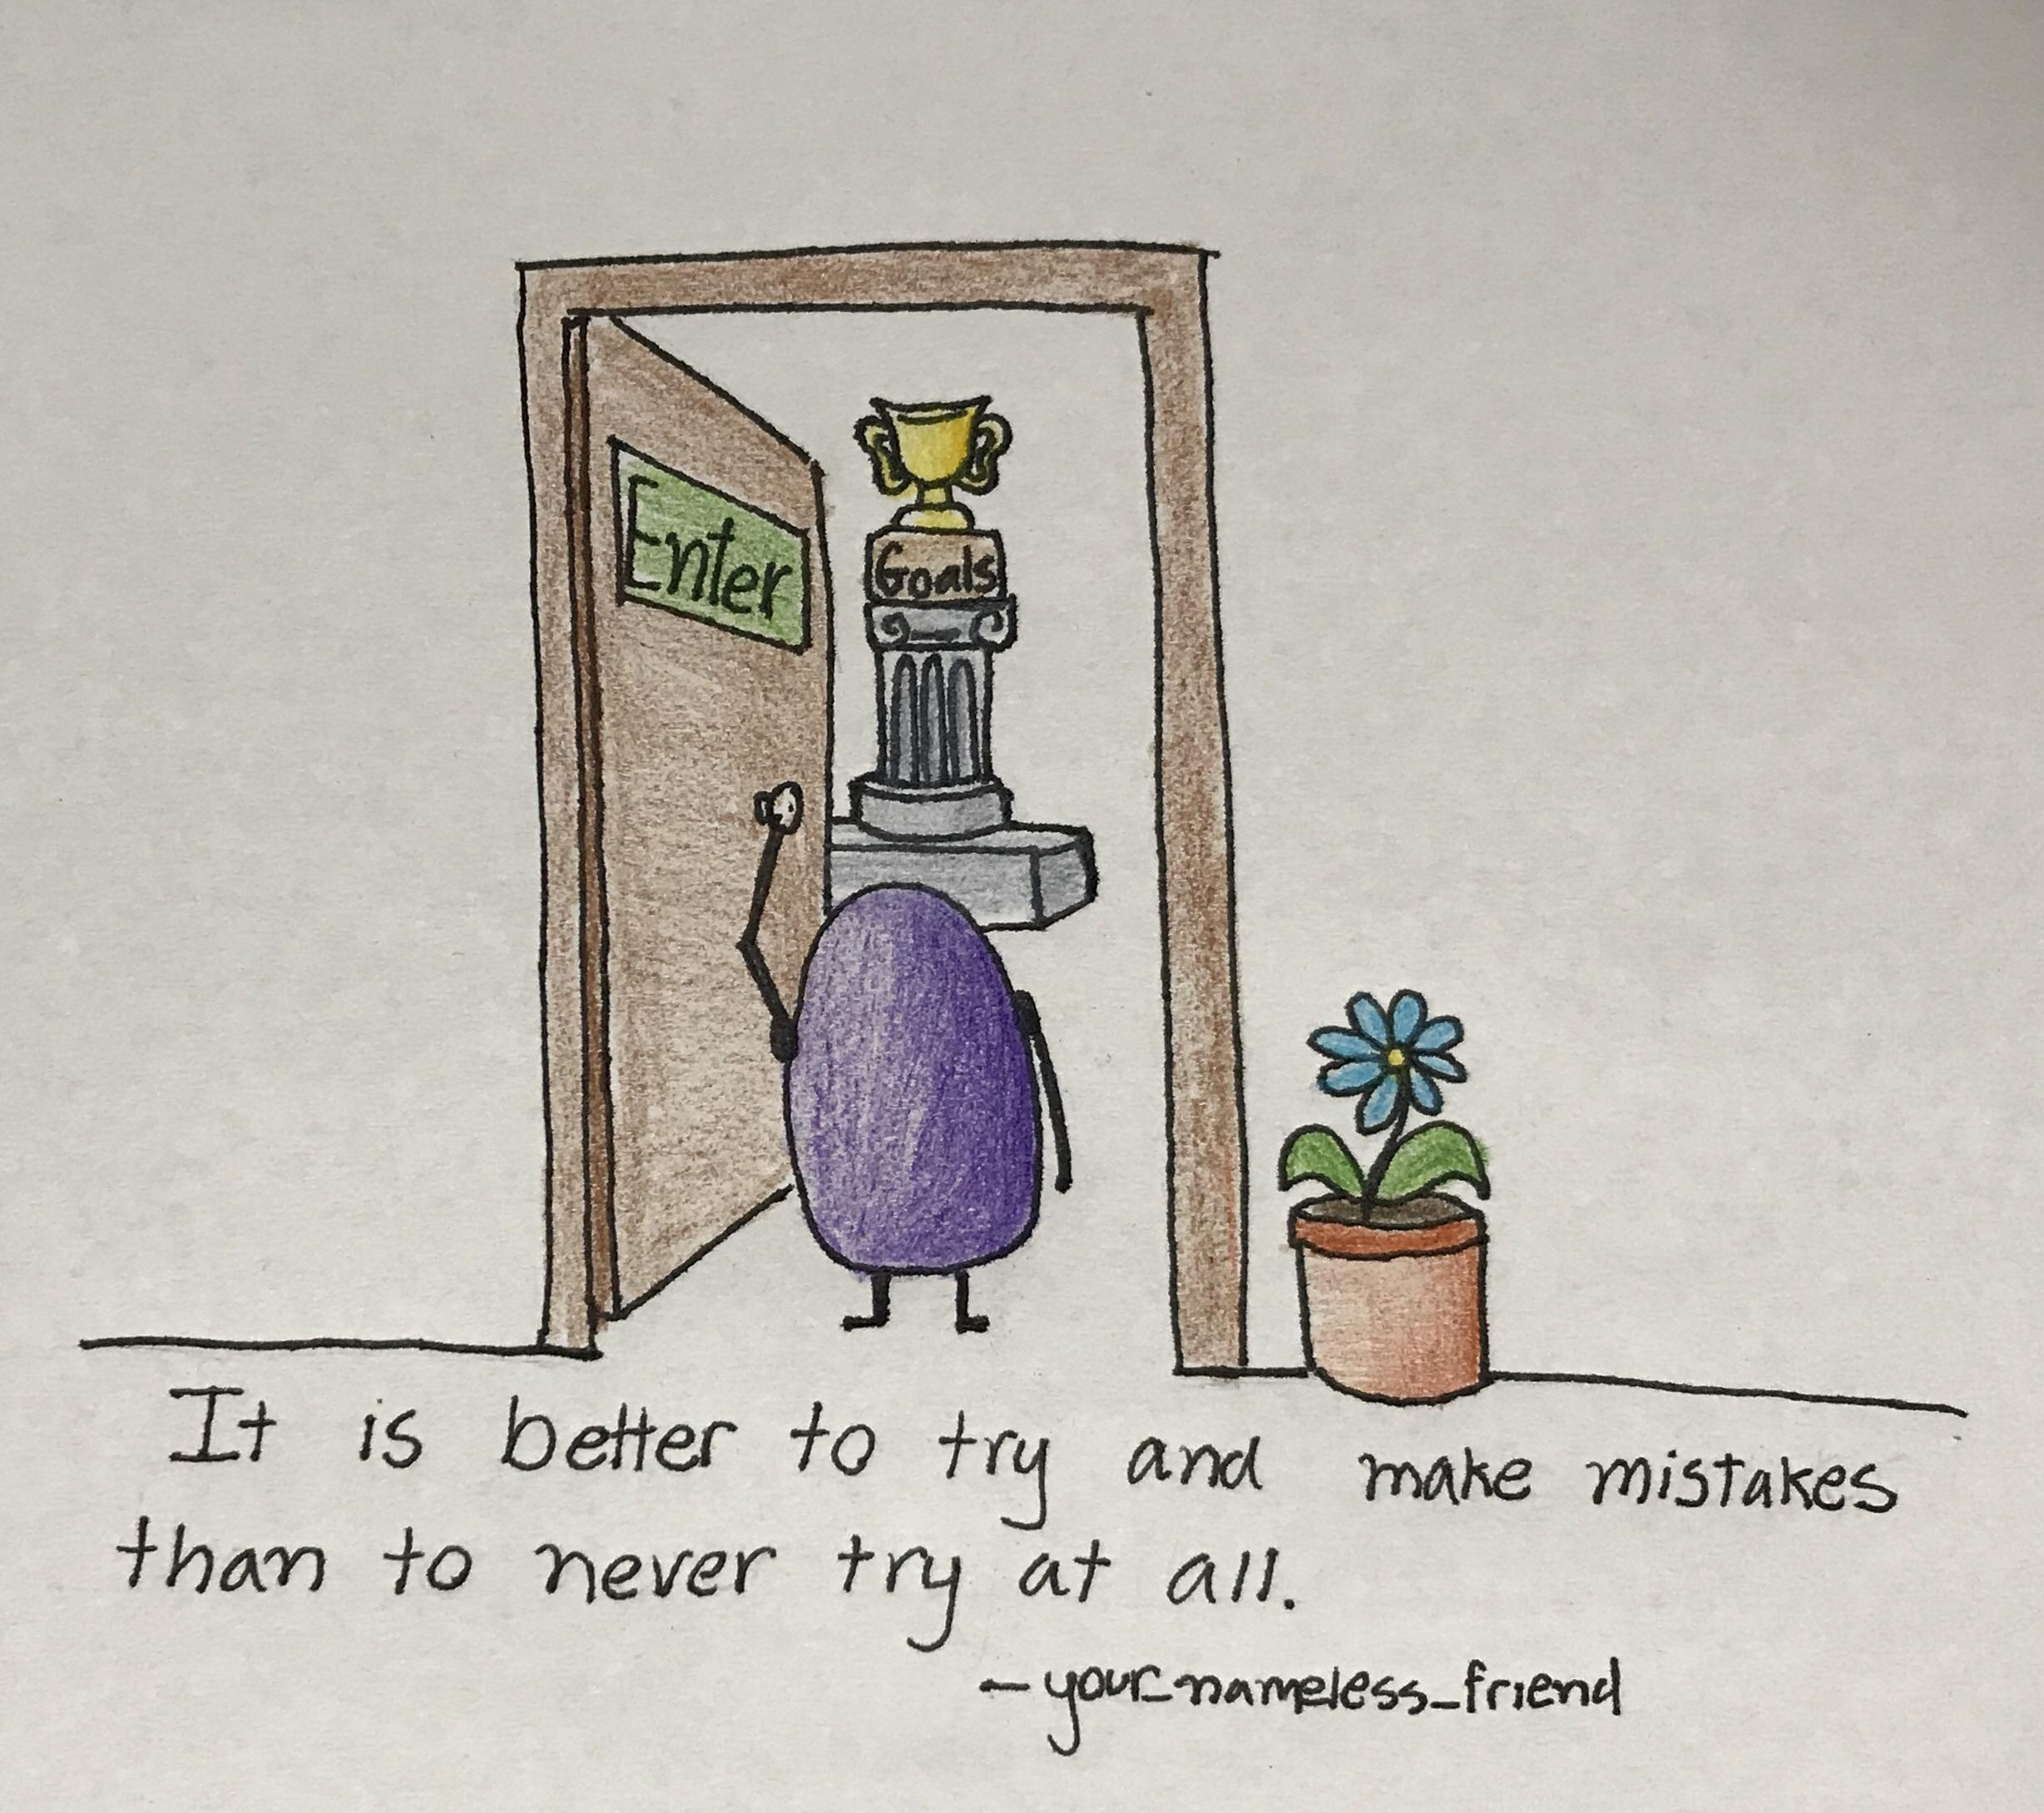 [image] better to try